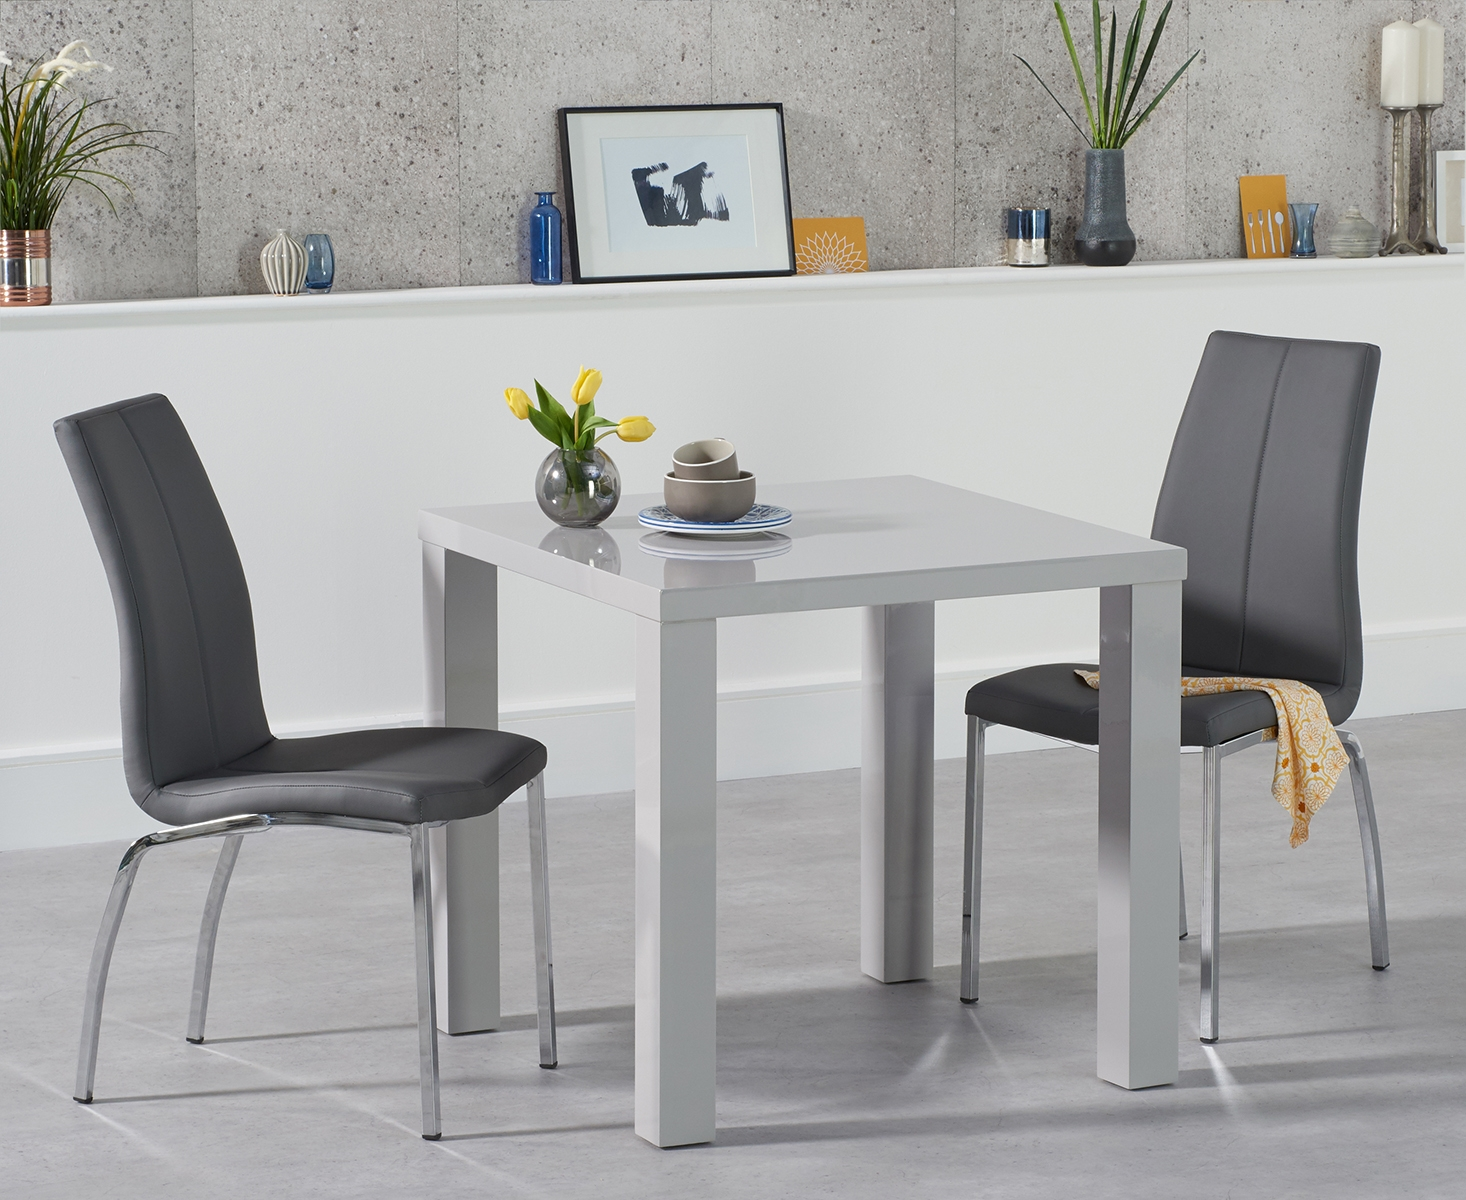 An image of Atlanta 80cm Light Grey High Gloss Dining Table with Cavello Chairs